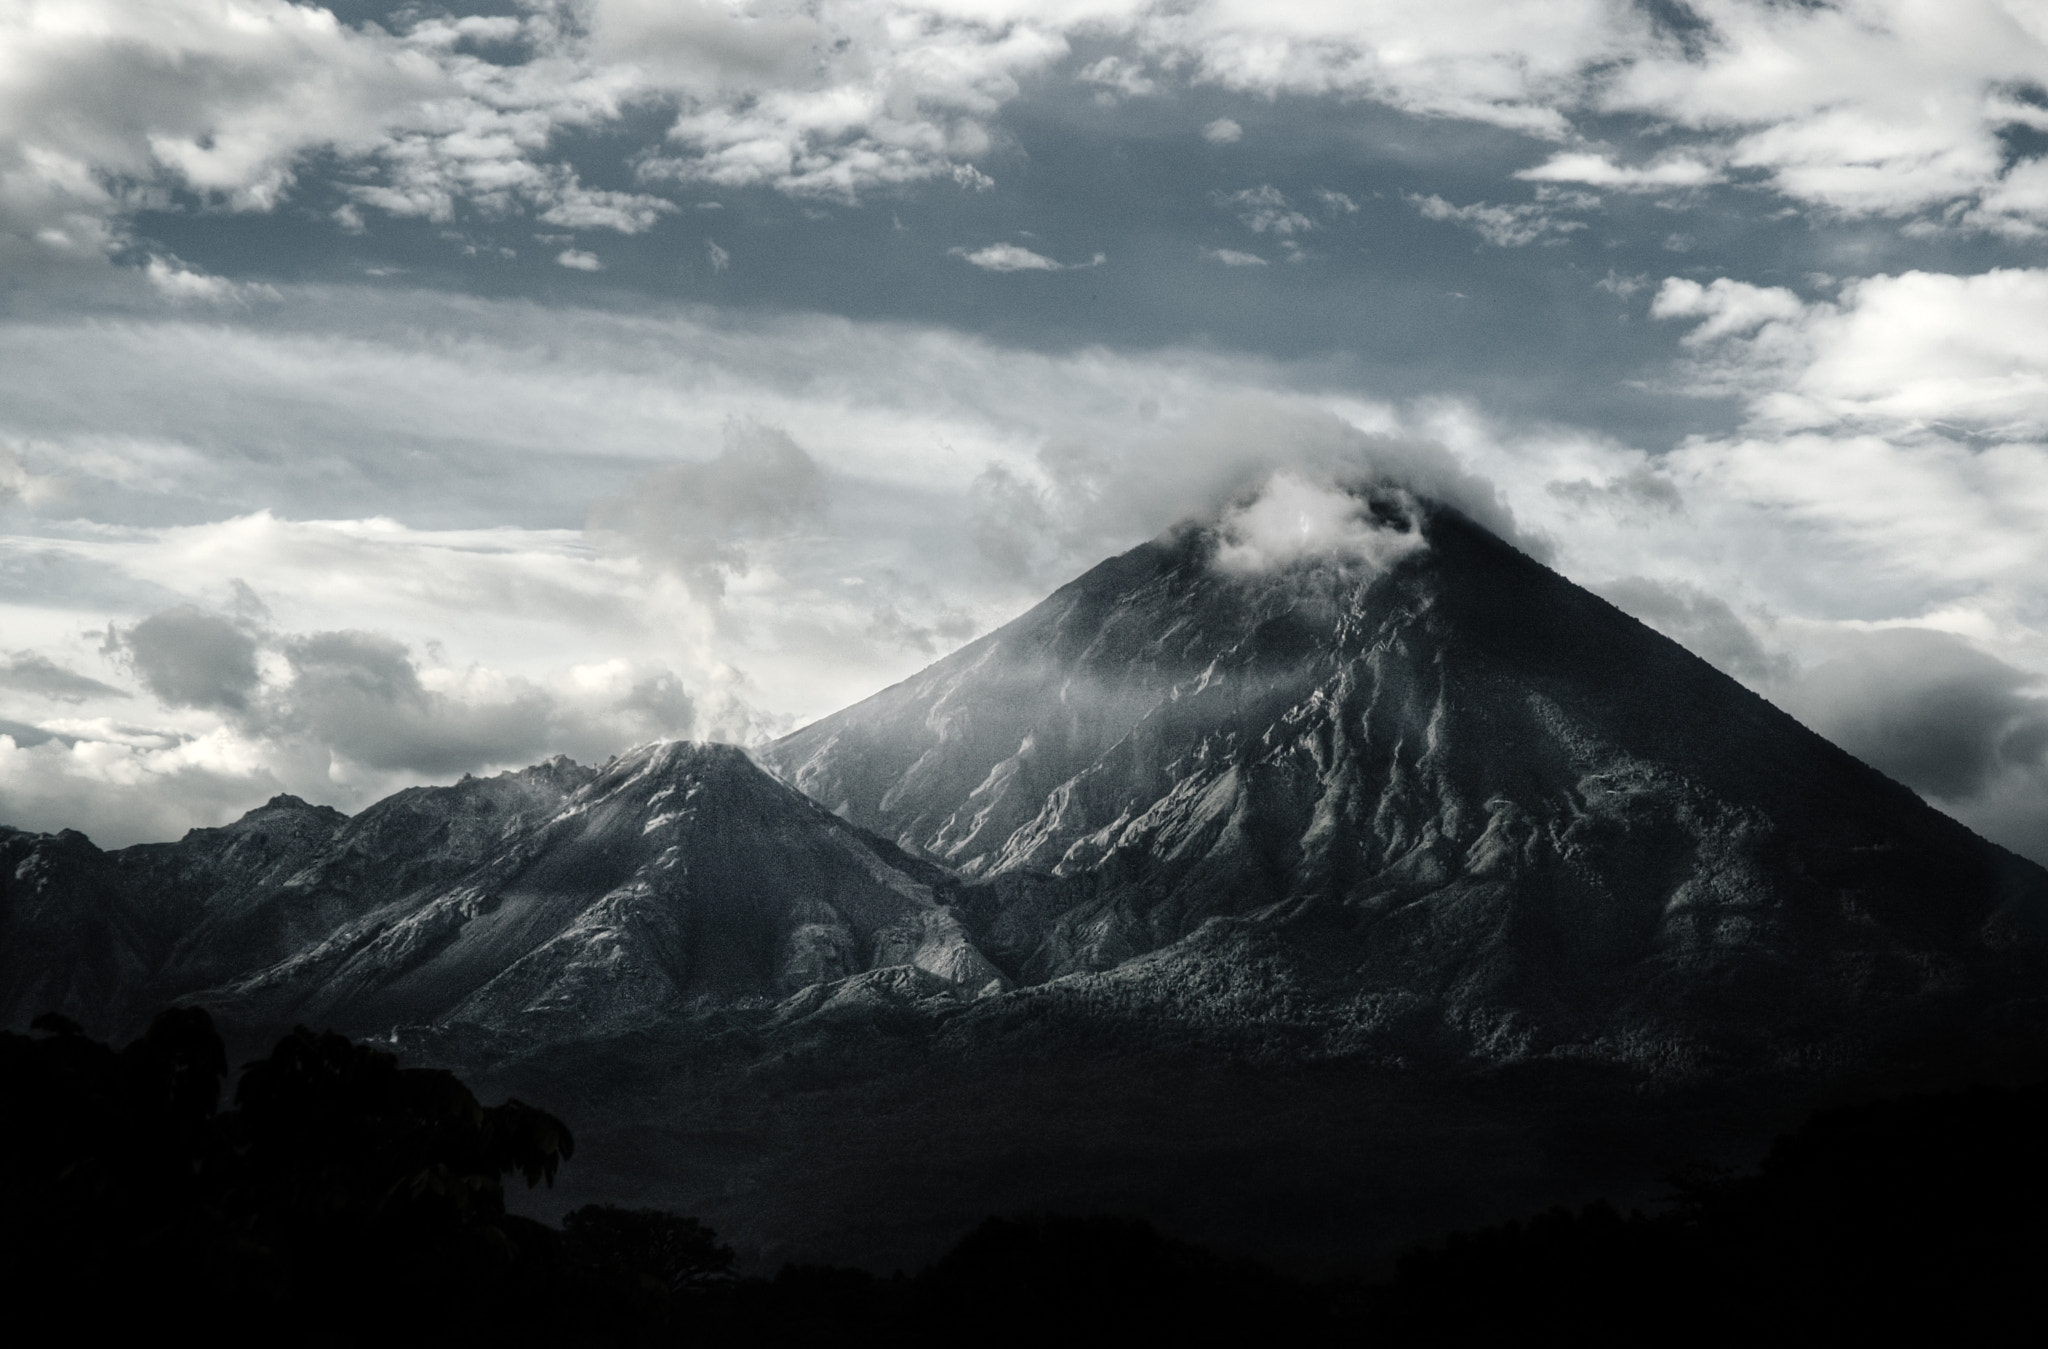 Photograph Mount Doom by Dave Wilson on 500px